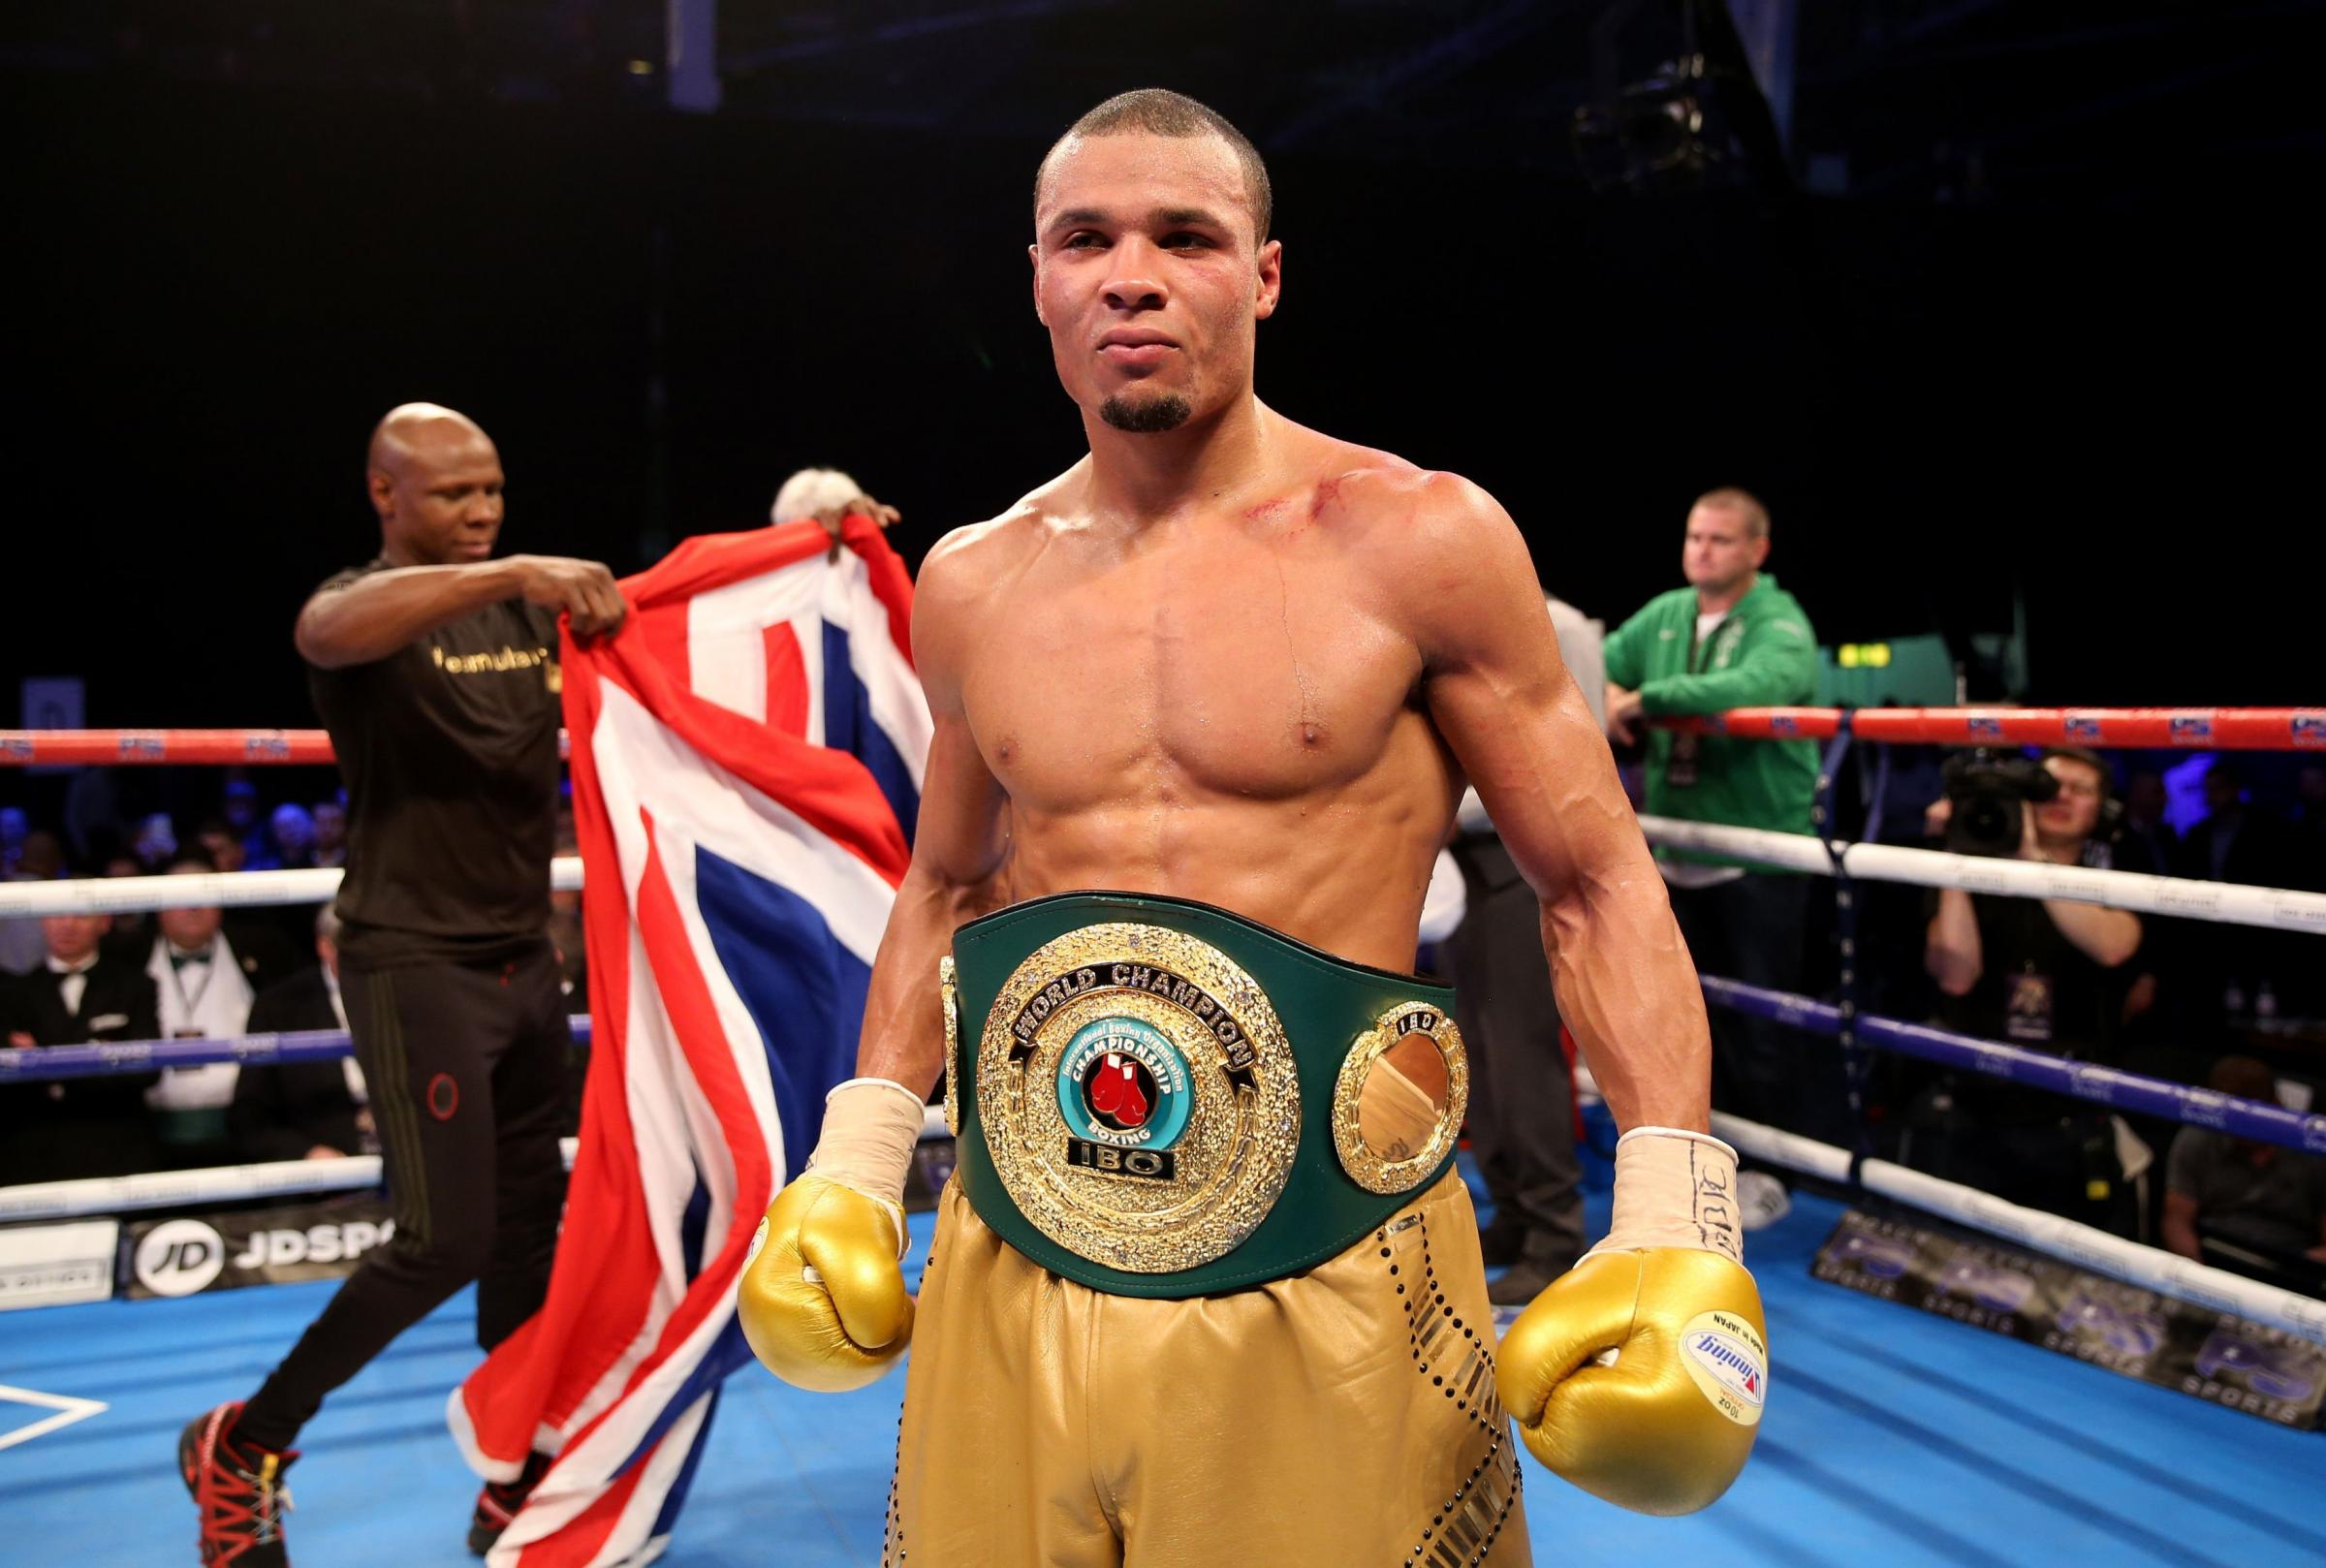 Chris Eubank junior shows off the world title belt after beating Renold Quinlan